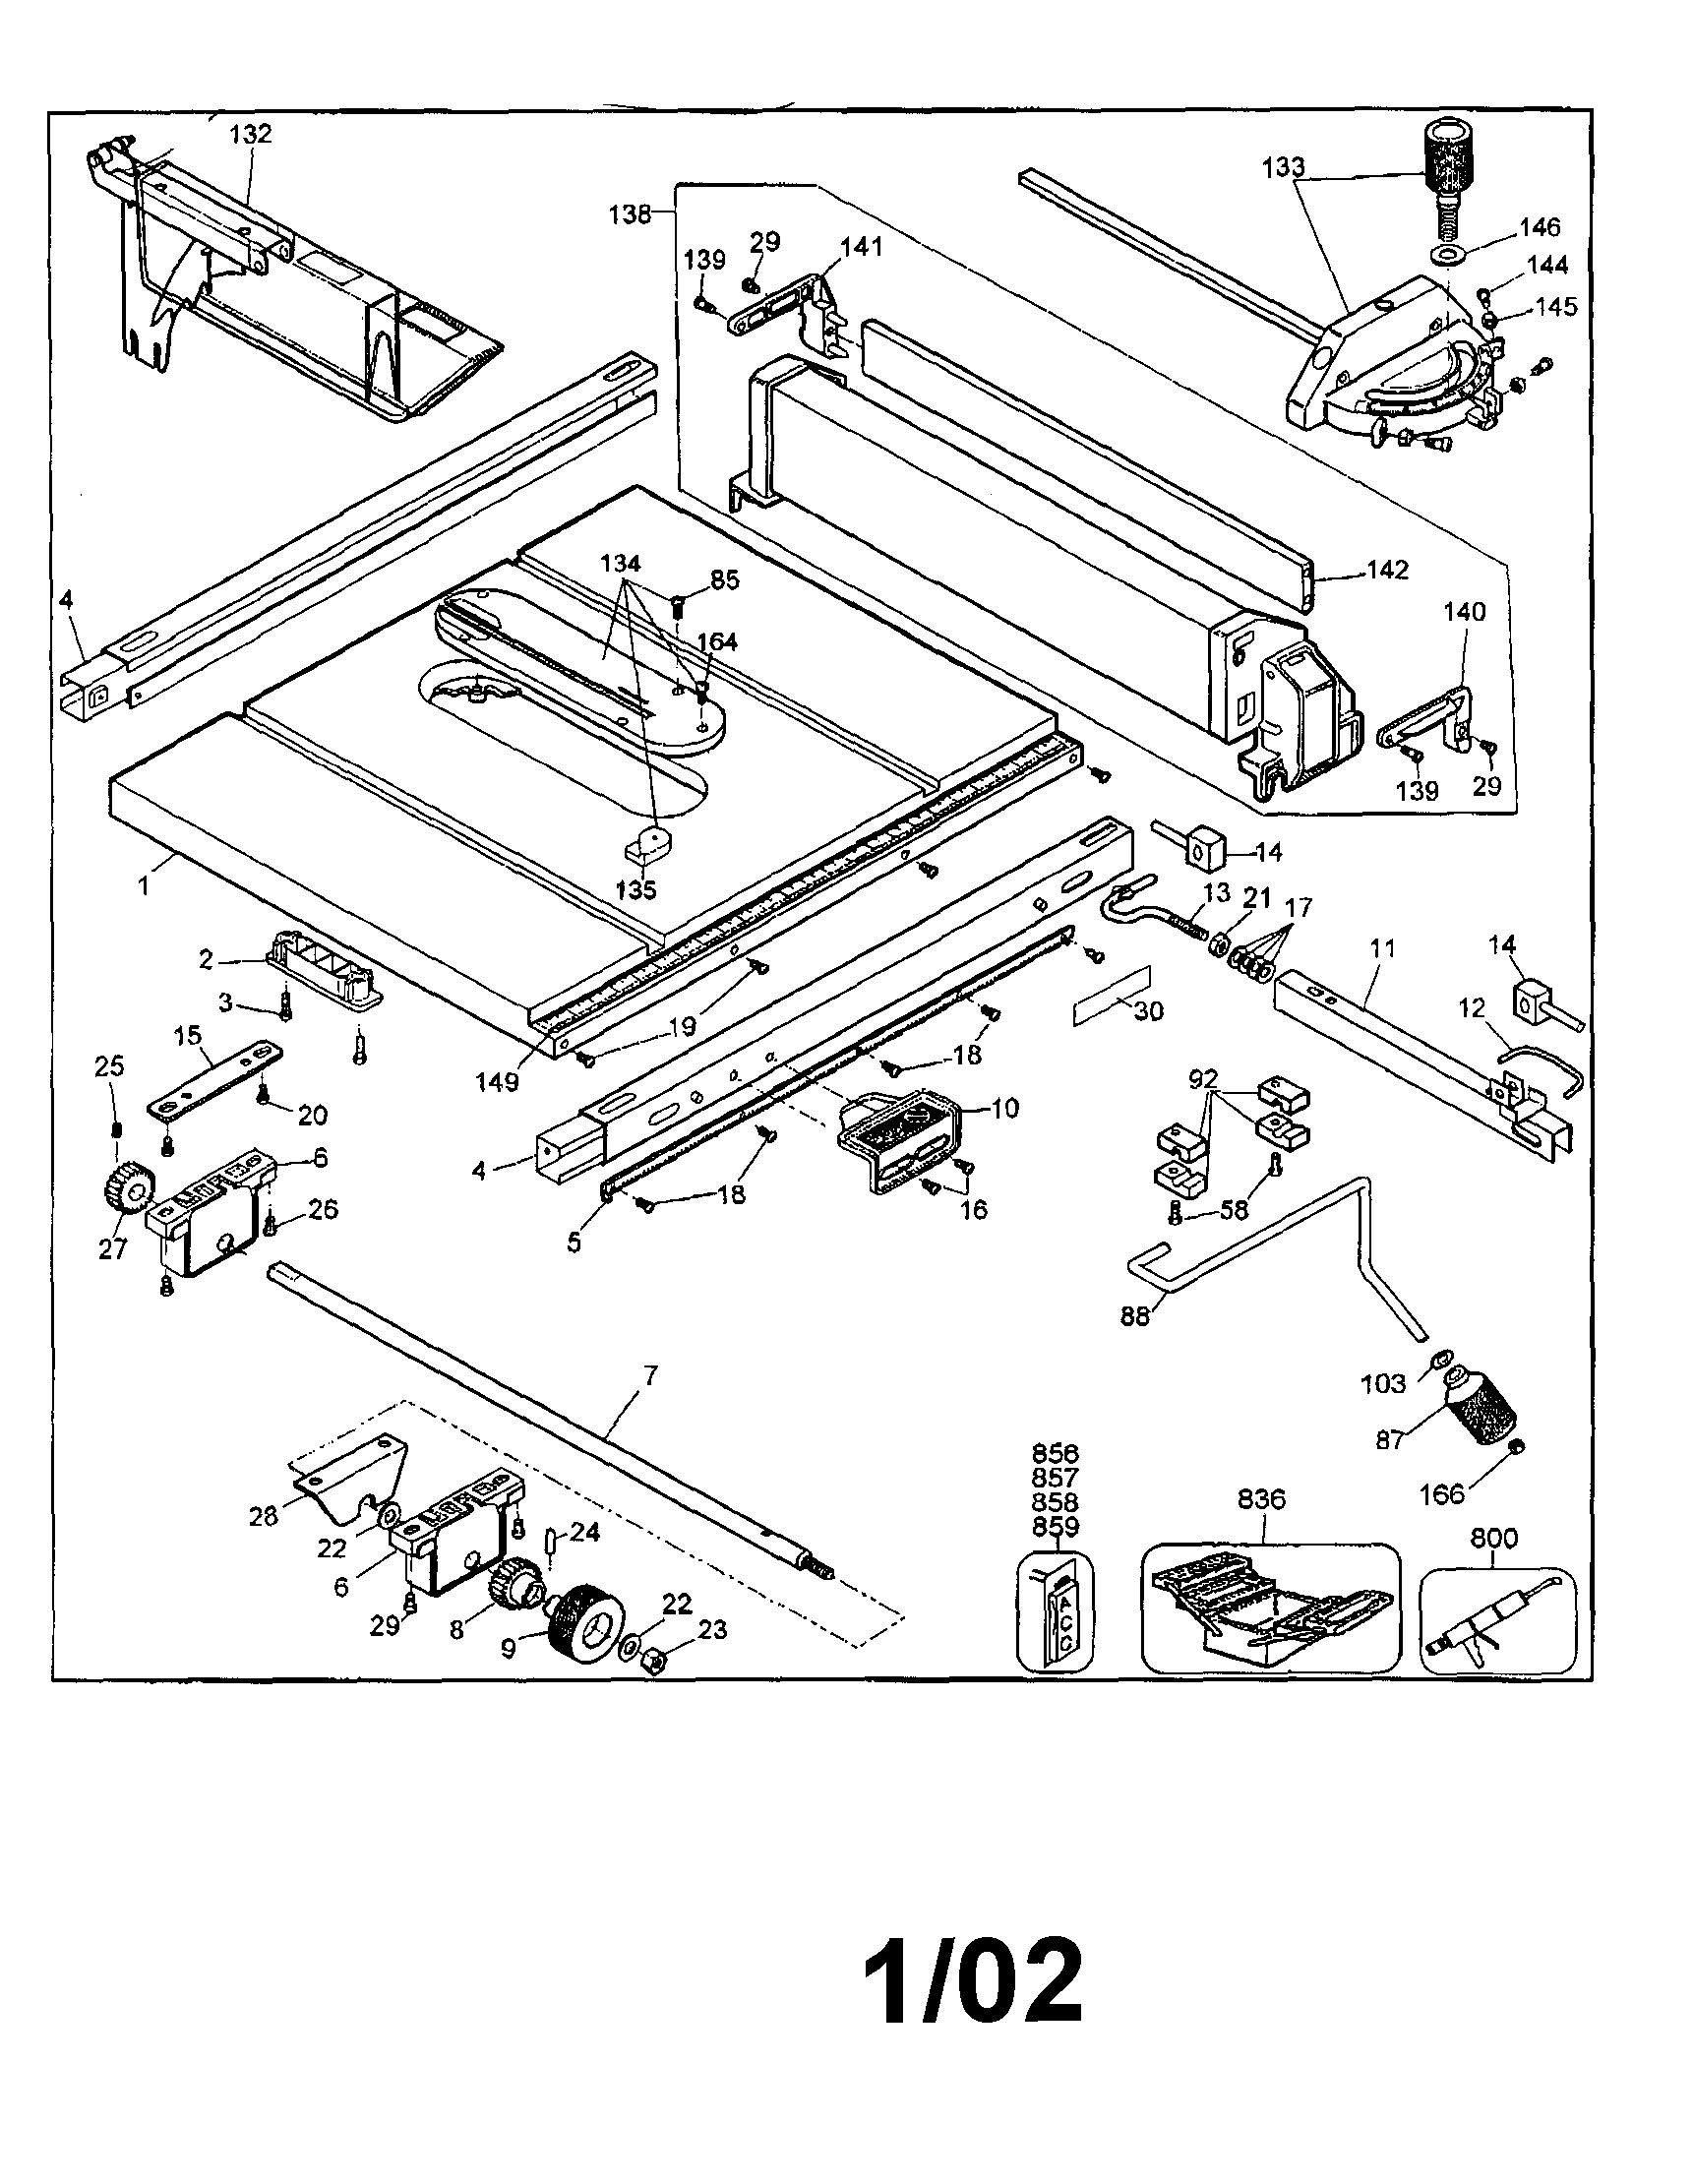 hight resolution of dewalt dw744s type 2 table diagram